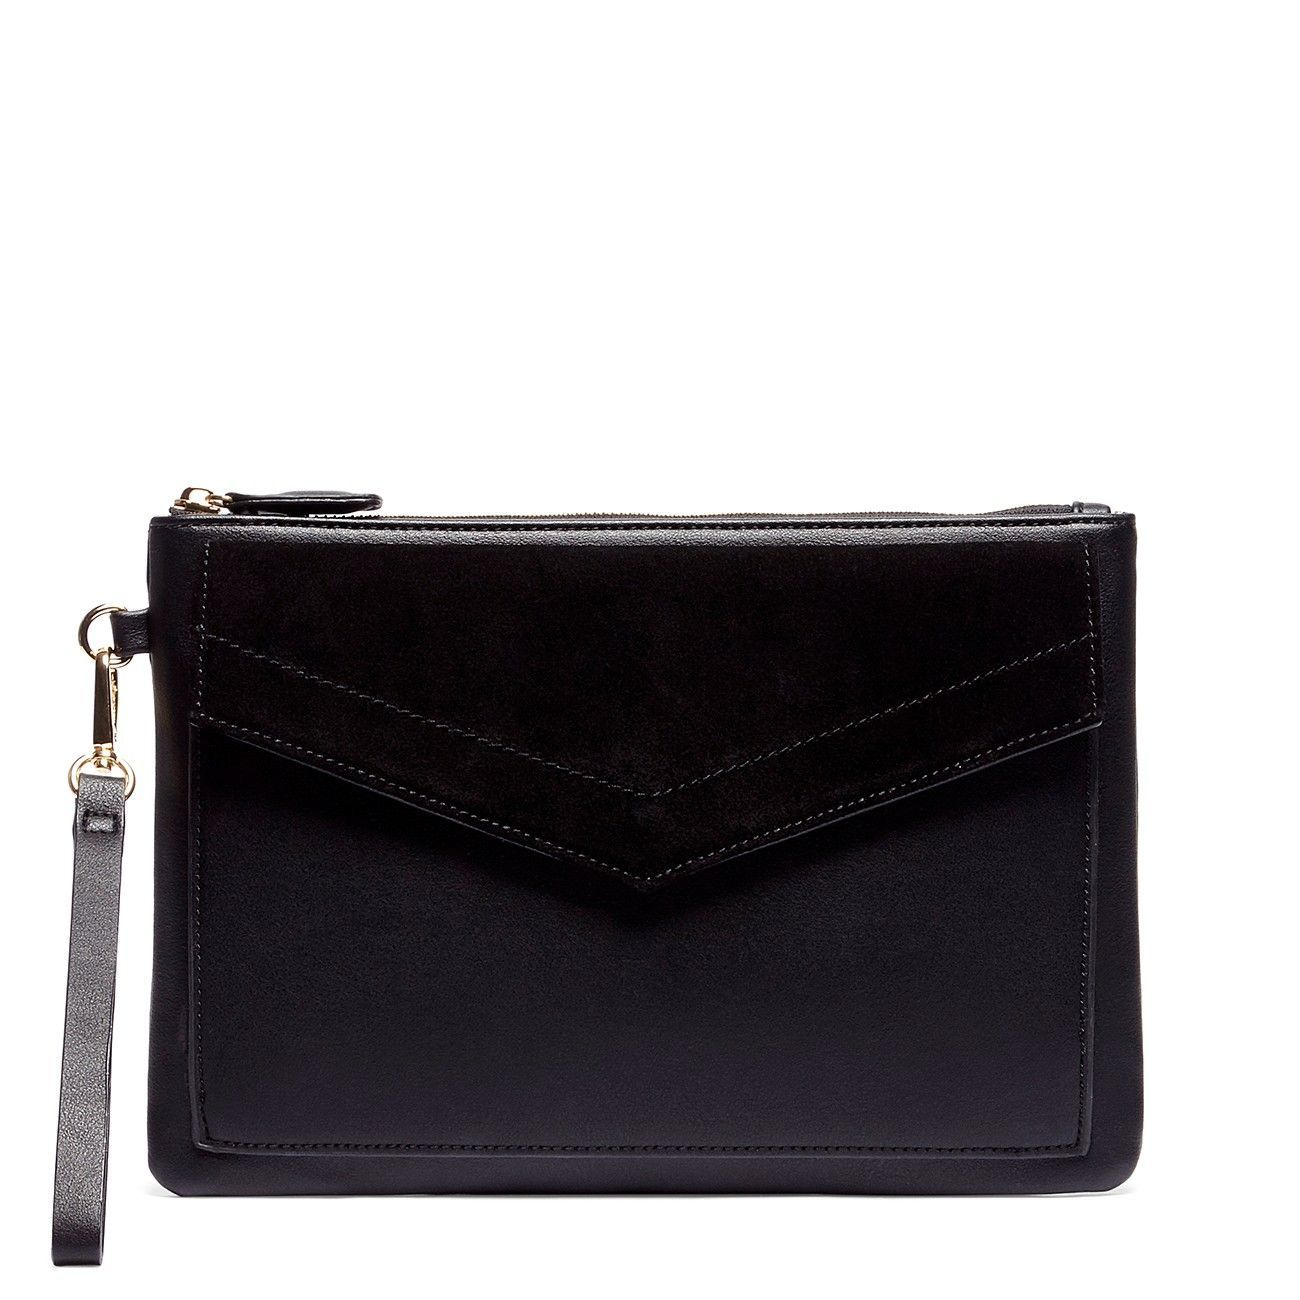 Classy and Stylish Wristlet Clutch Wallet